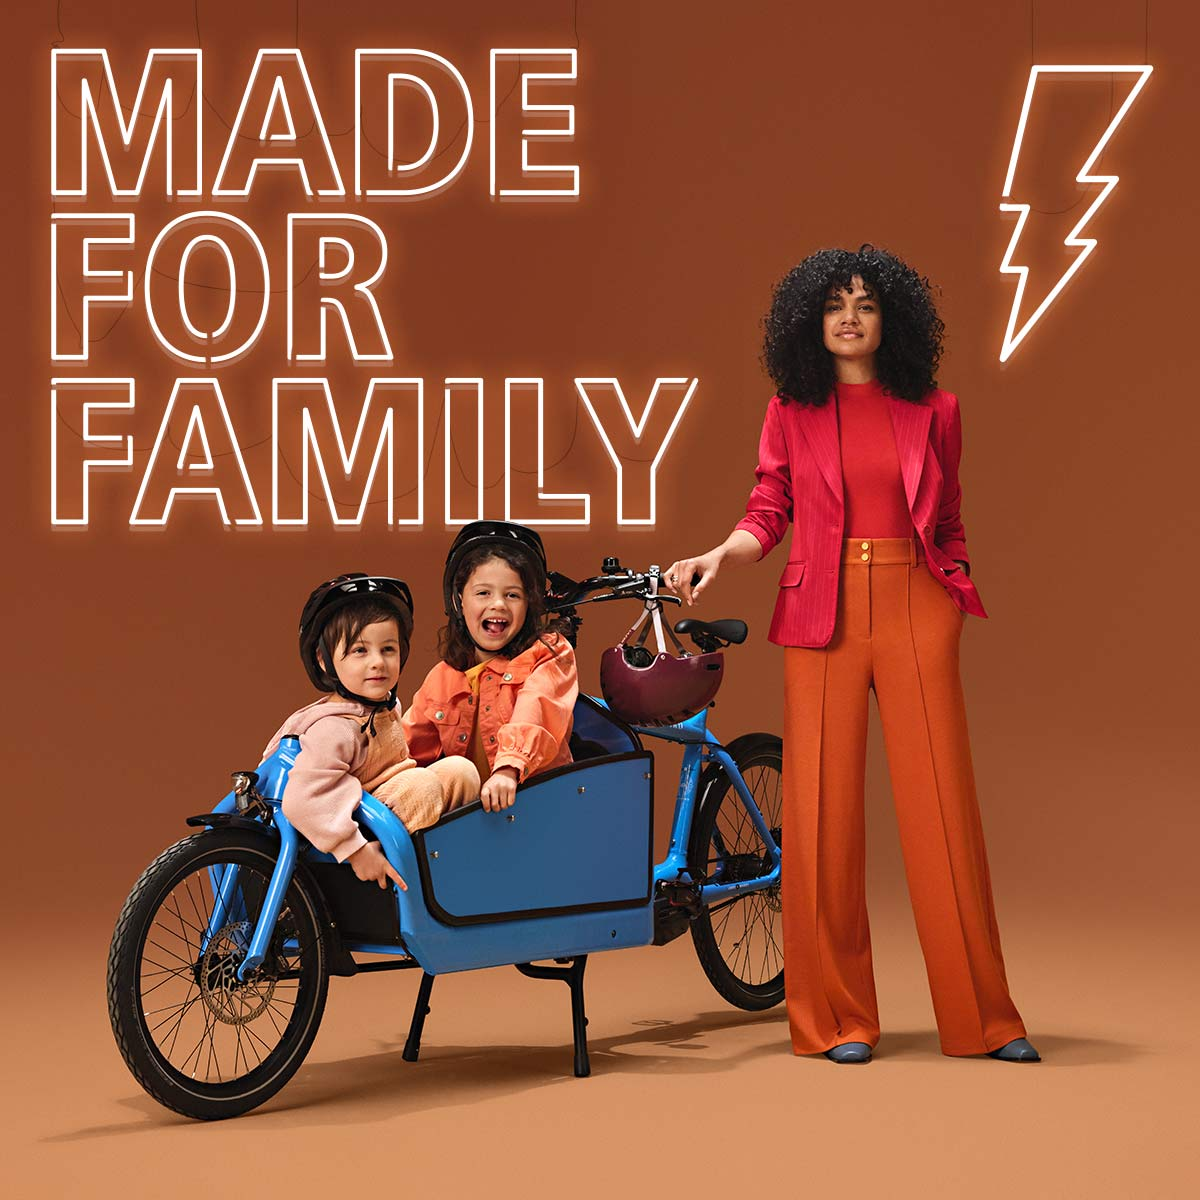 Shimano Cargo e-bikes, heavy-duty electric motor cargo-specific power tunes, made for family